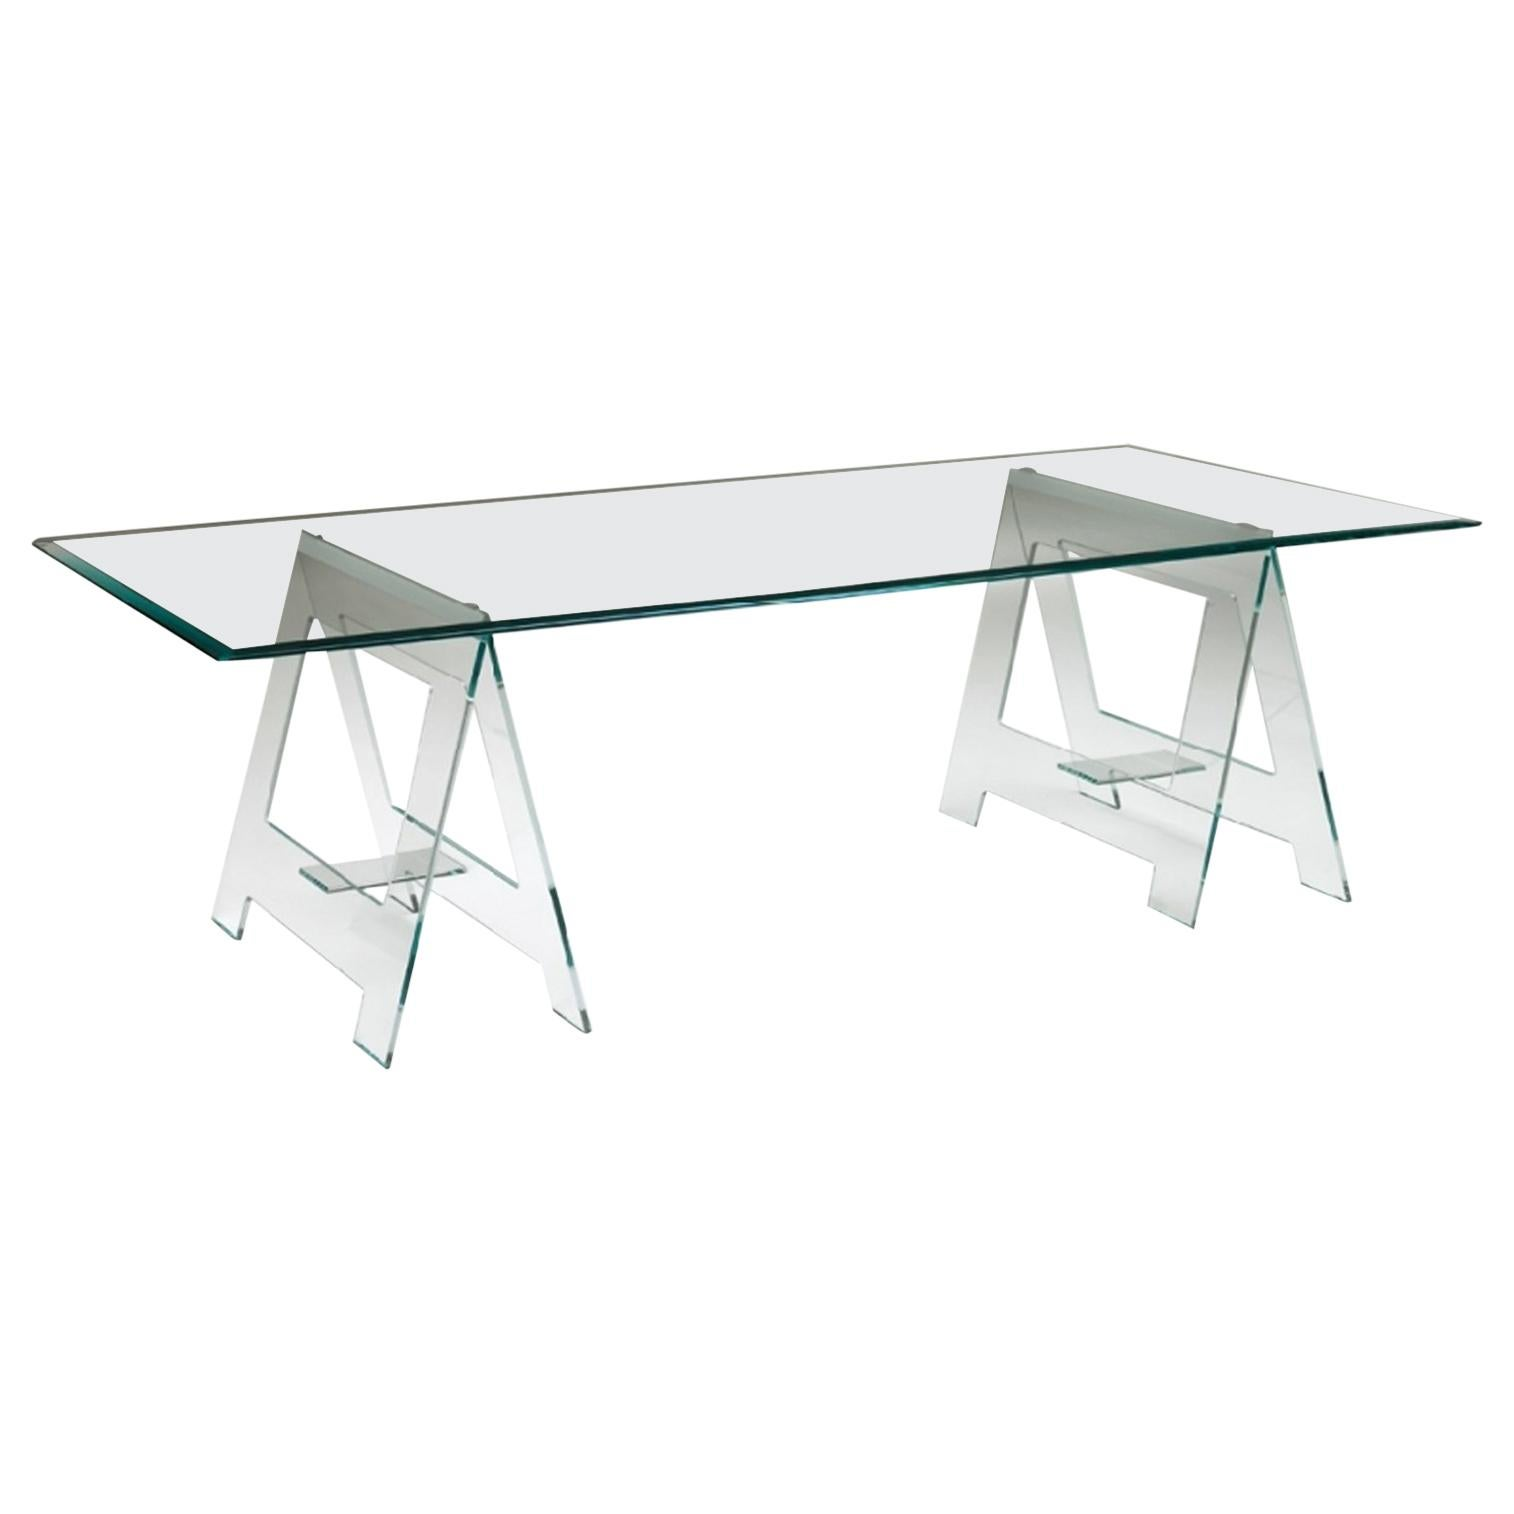 21st Century Italian Modern Design Desk or Dining Table with Easels